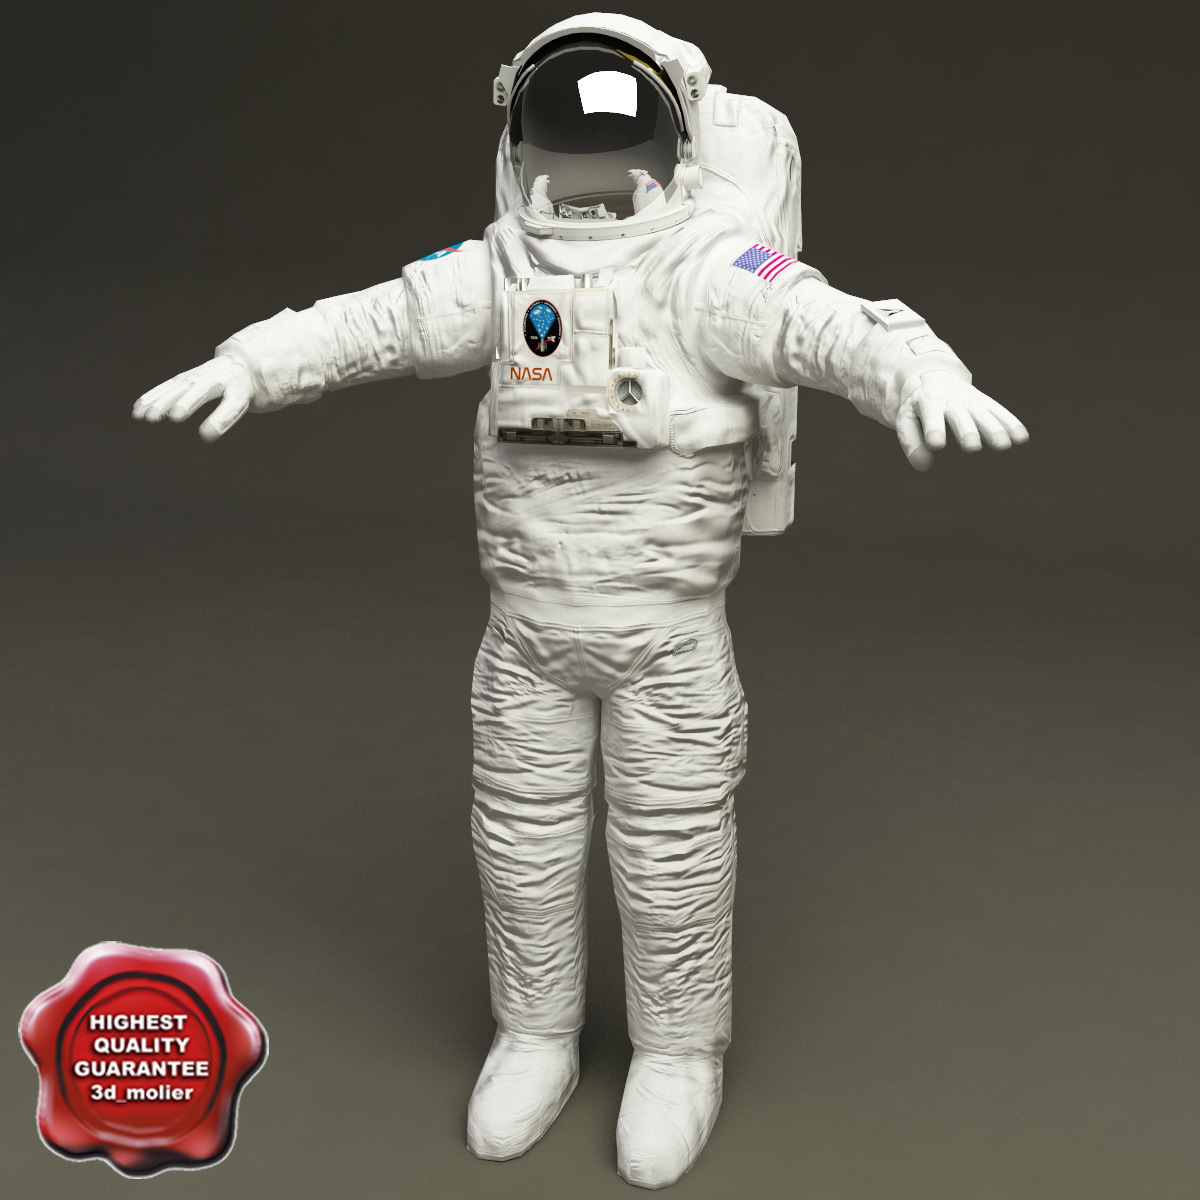 HD Astronaut Suit - Pics about space